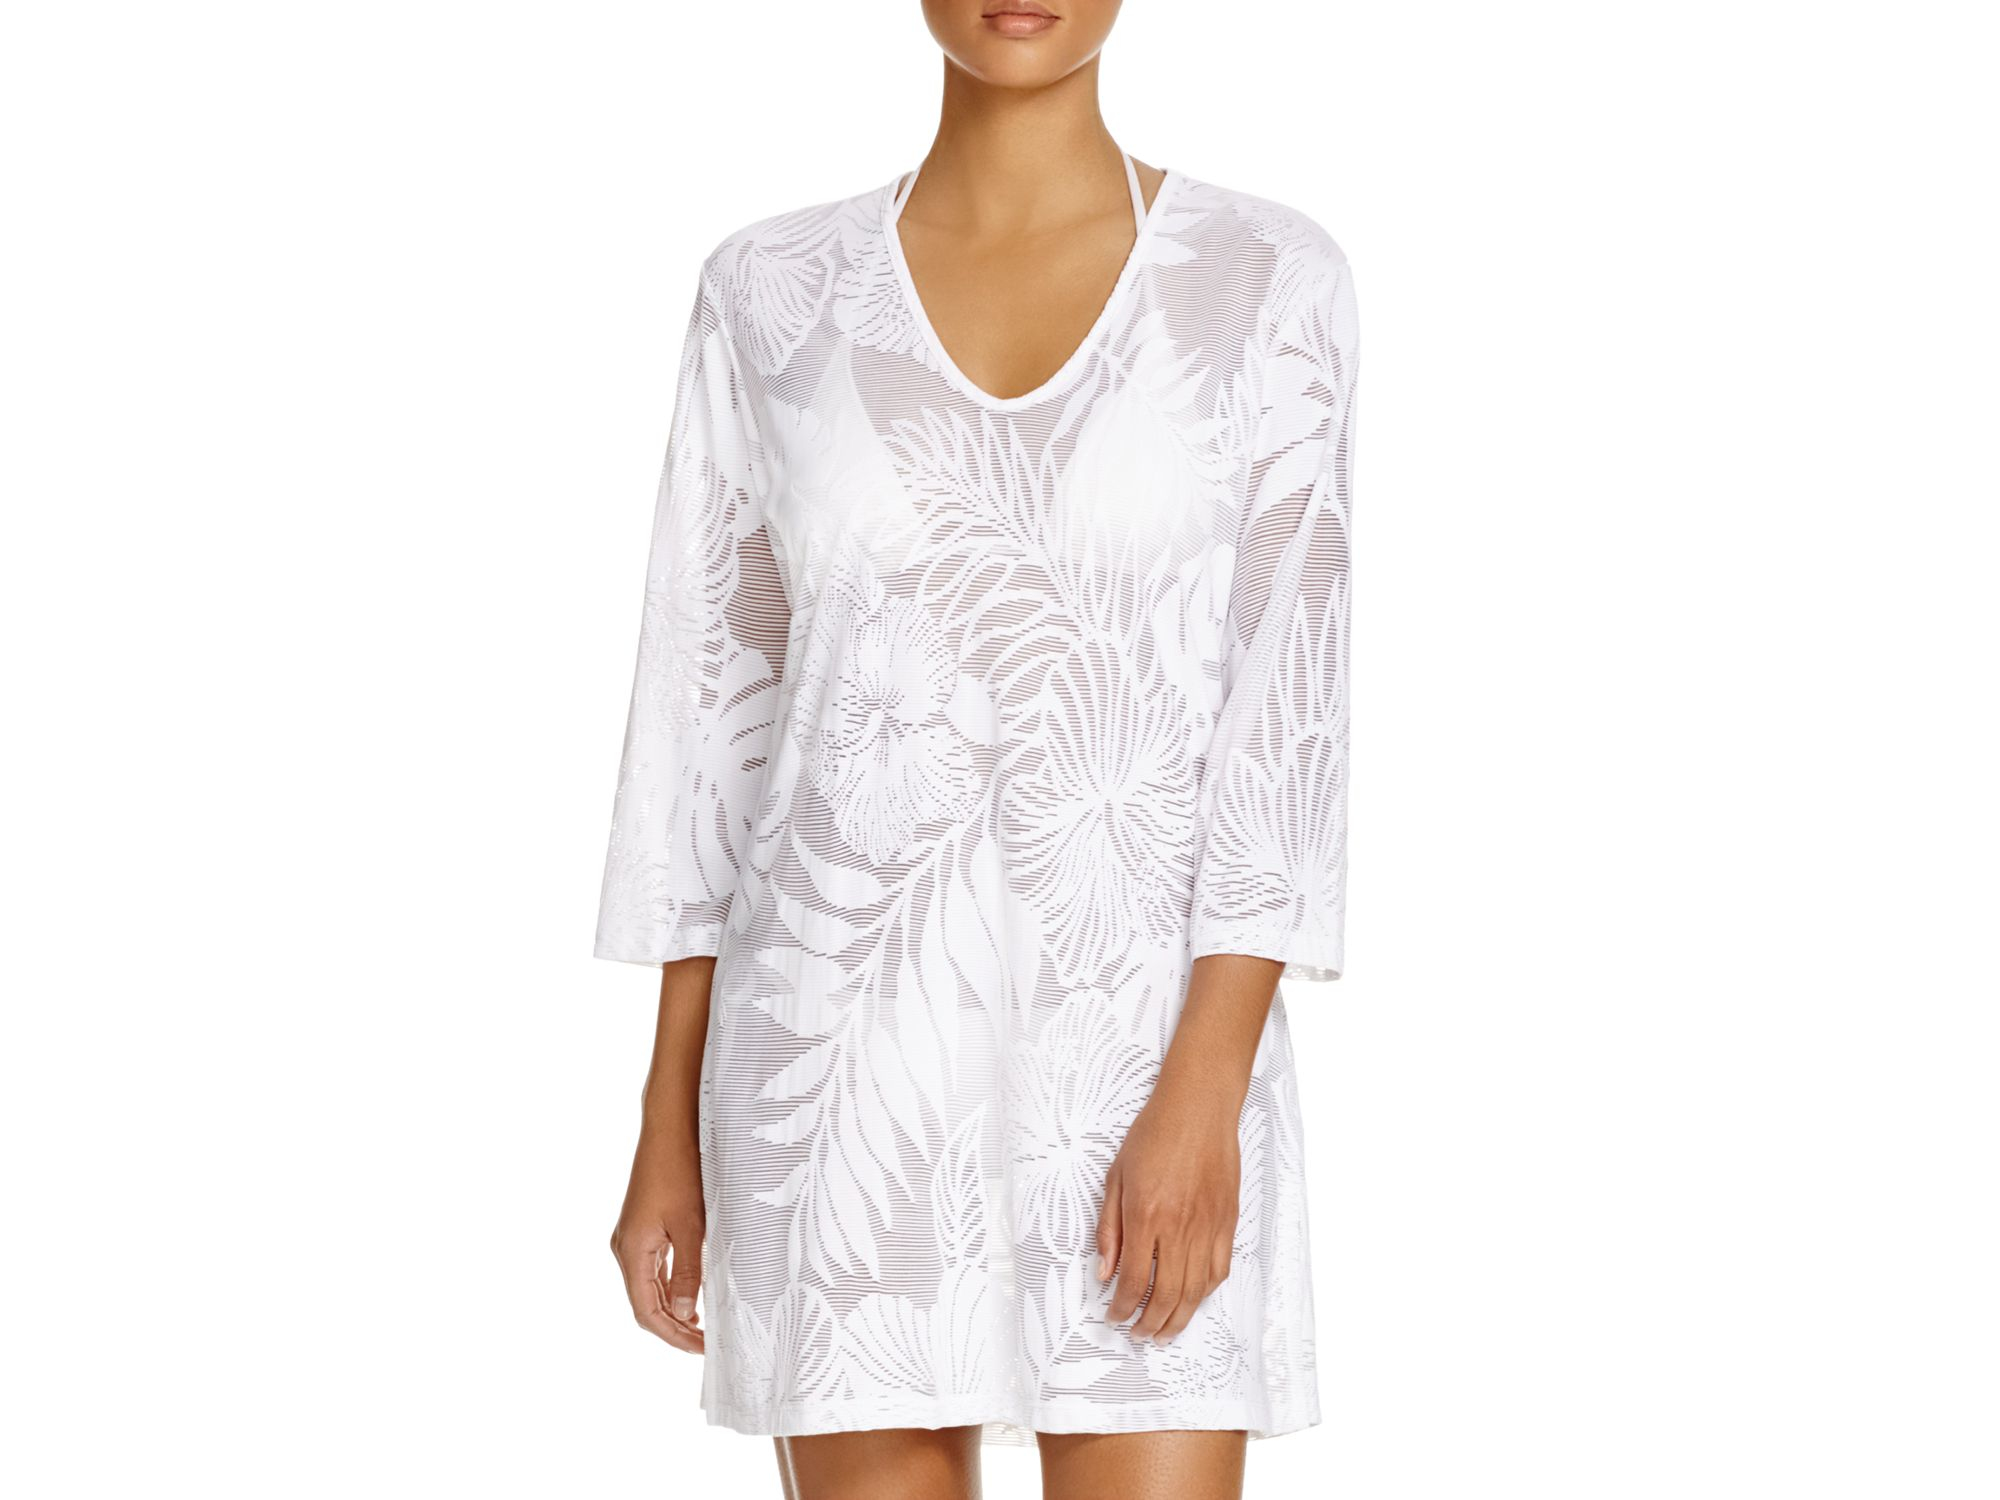 0b80a070c3 Lyst - J Valdi Tropical Floral Tunic Swim Cover Up in White